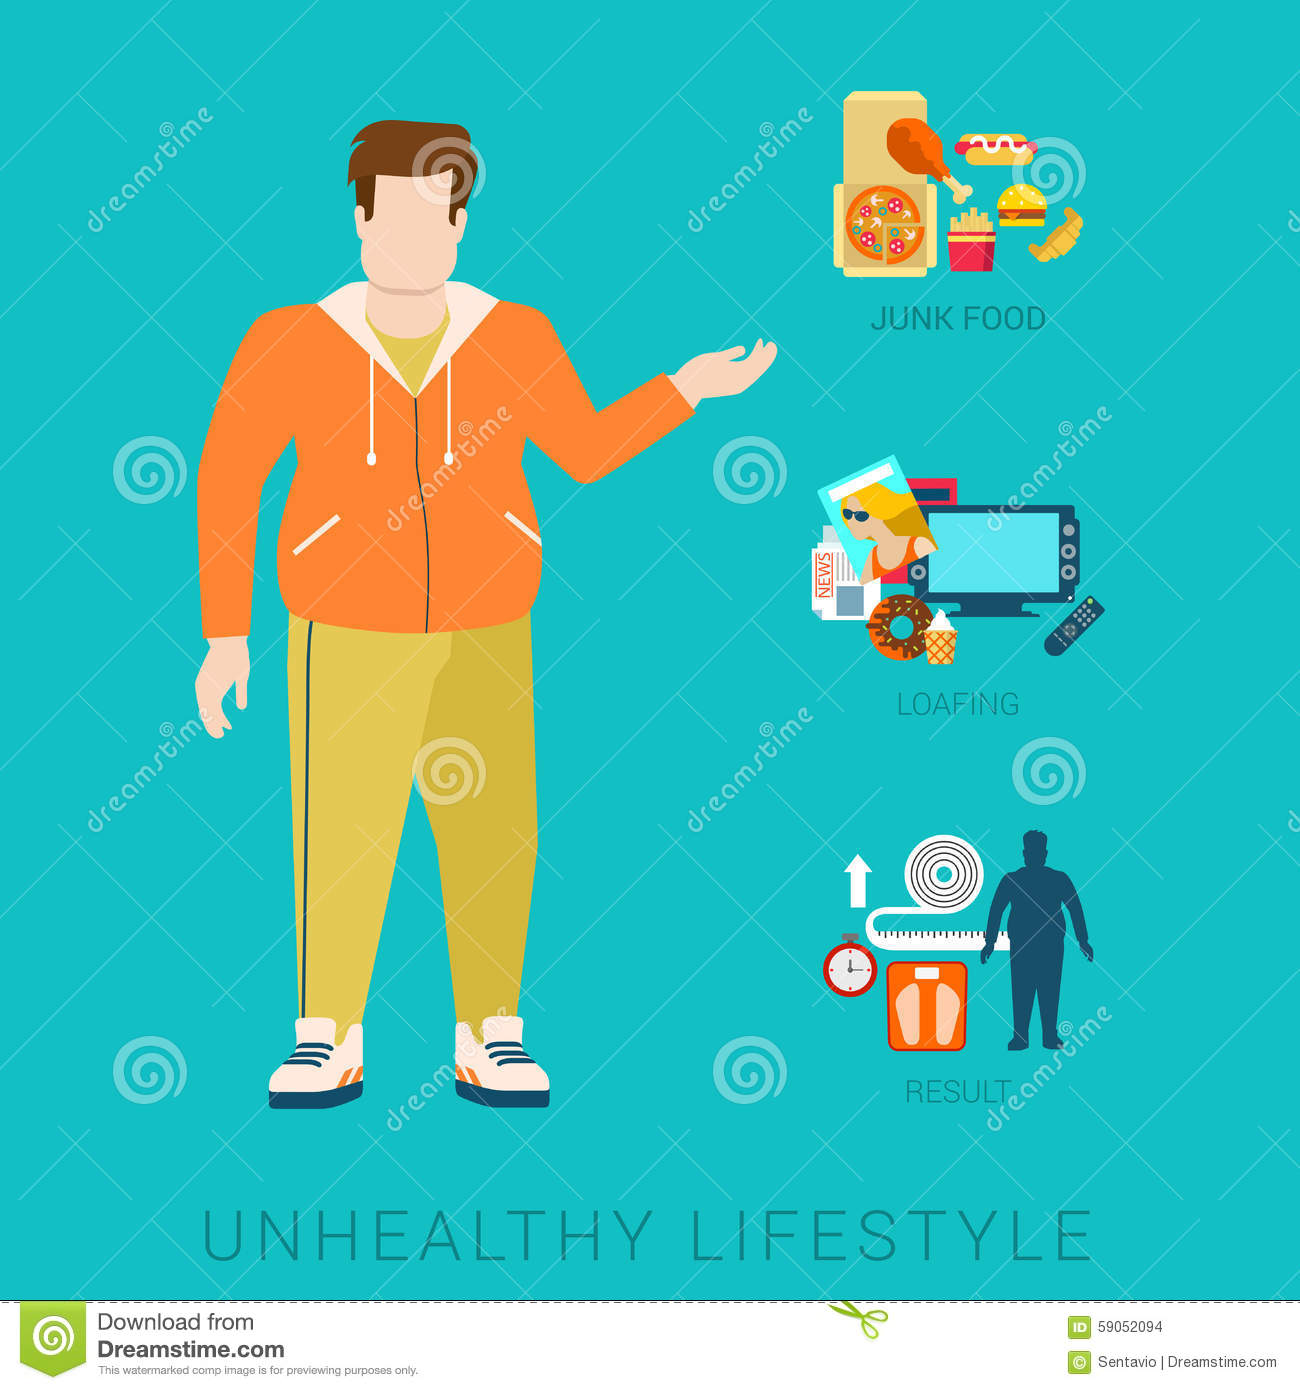 Unhealthy Poor Lifestyle Habit icons by Gan Khoon Lay |Unhealthy Lifestyle Icon